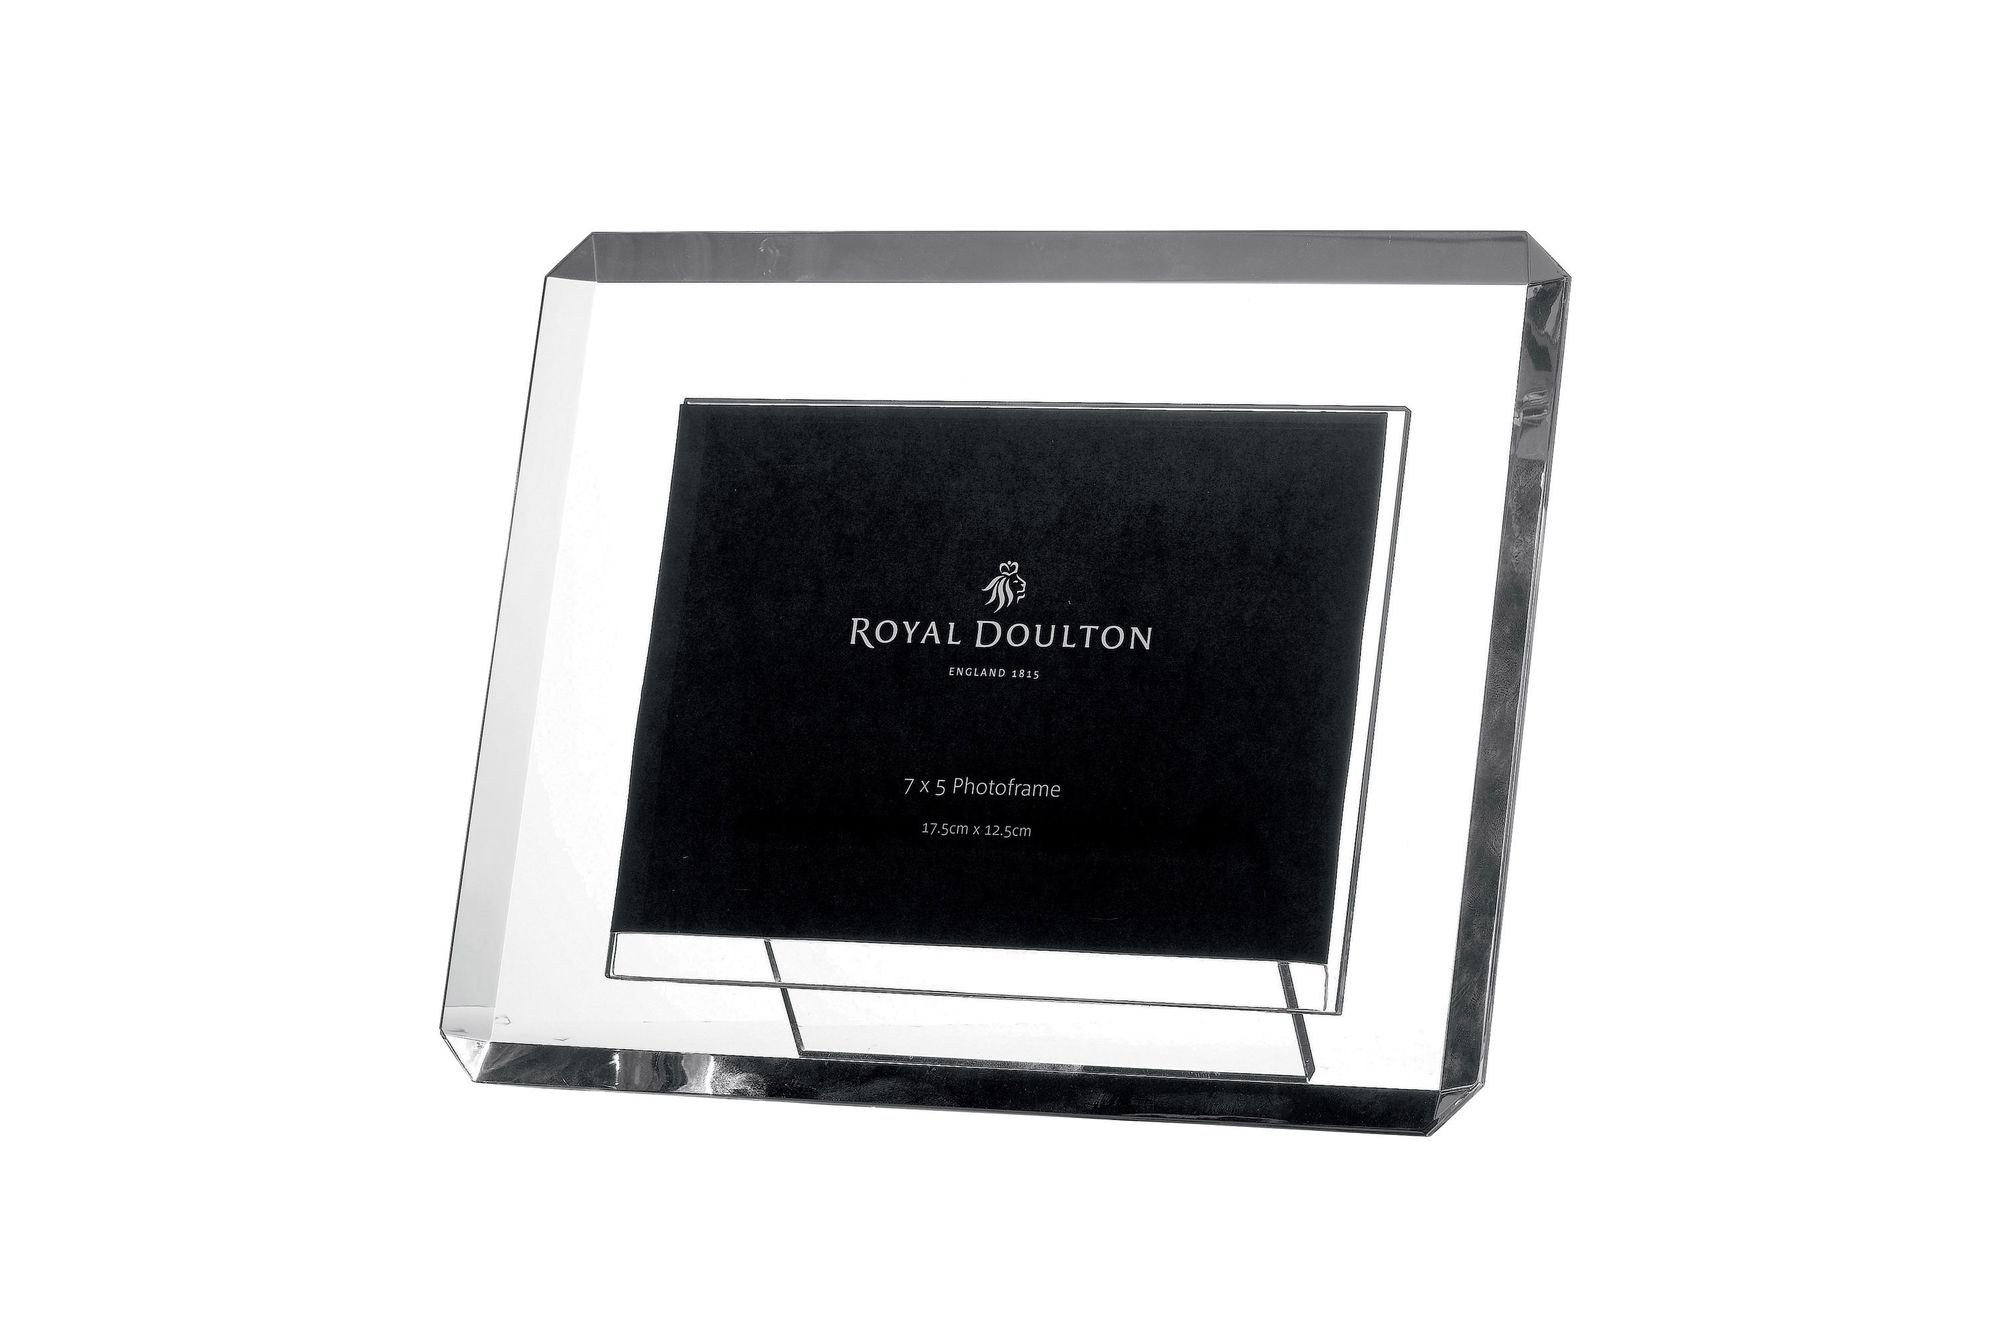 "Royal Doulton Radiance Bevelled Photo Frame Boxed 7 x 5"" thumb 1"